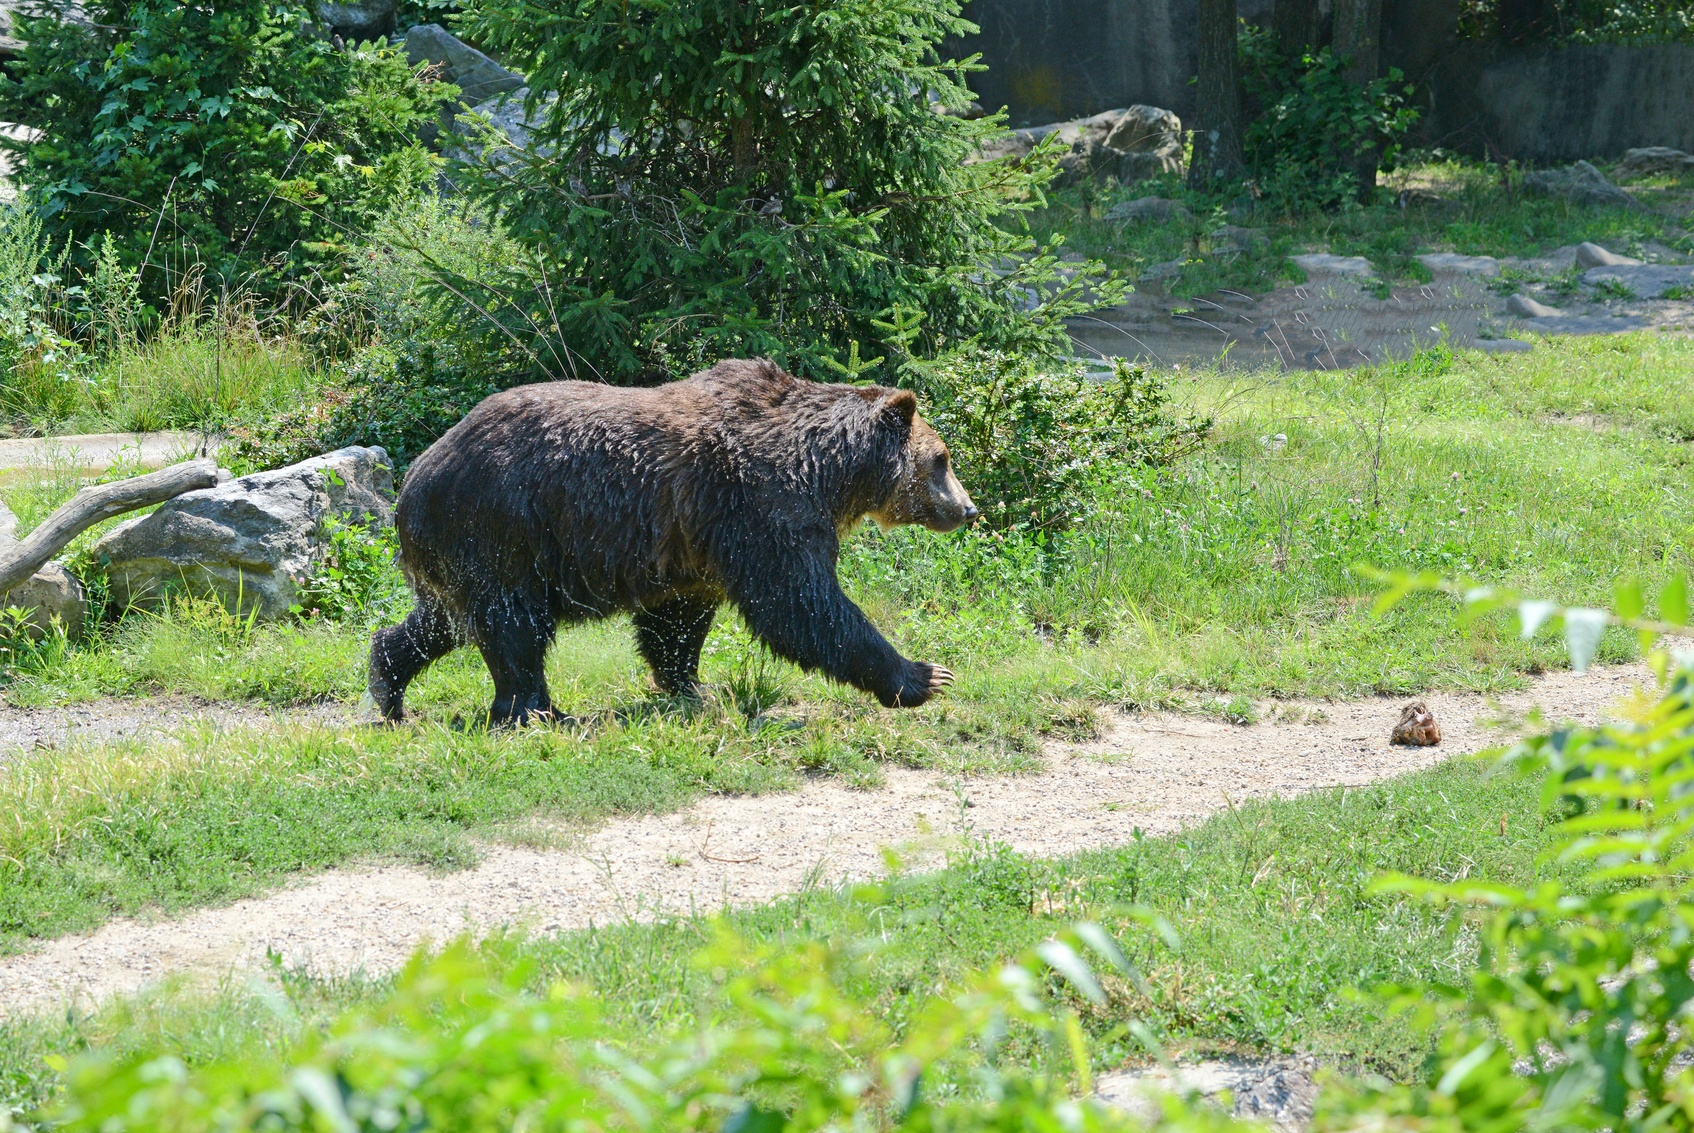 Be bear aware while hiking in Yellowstone